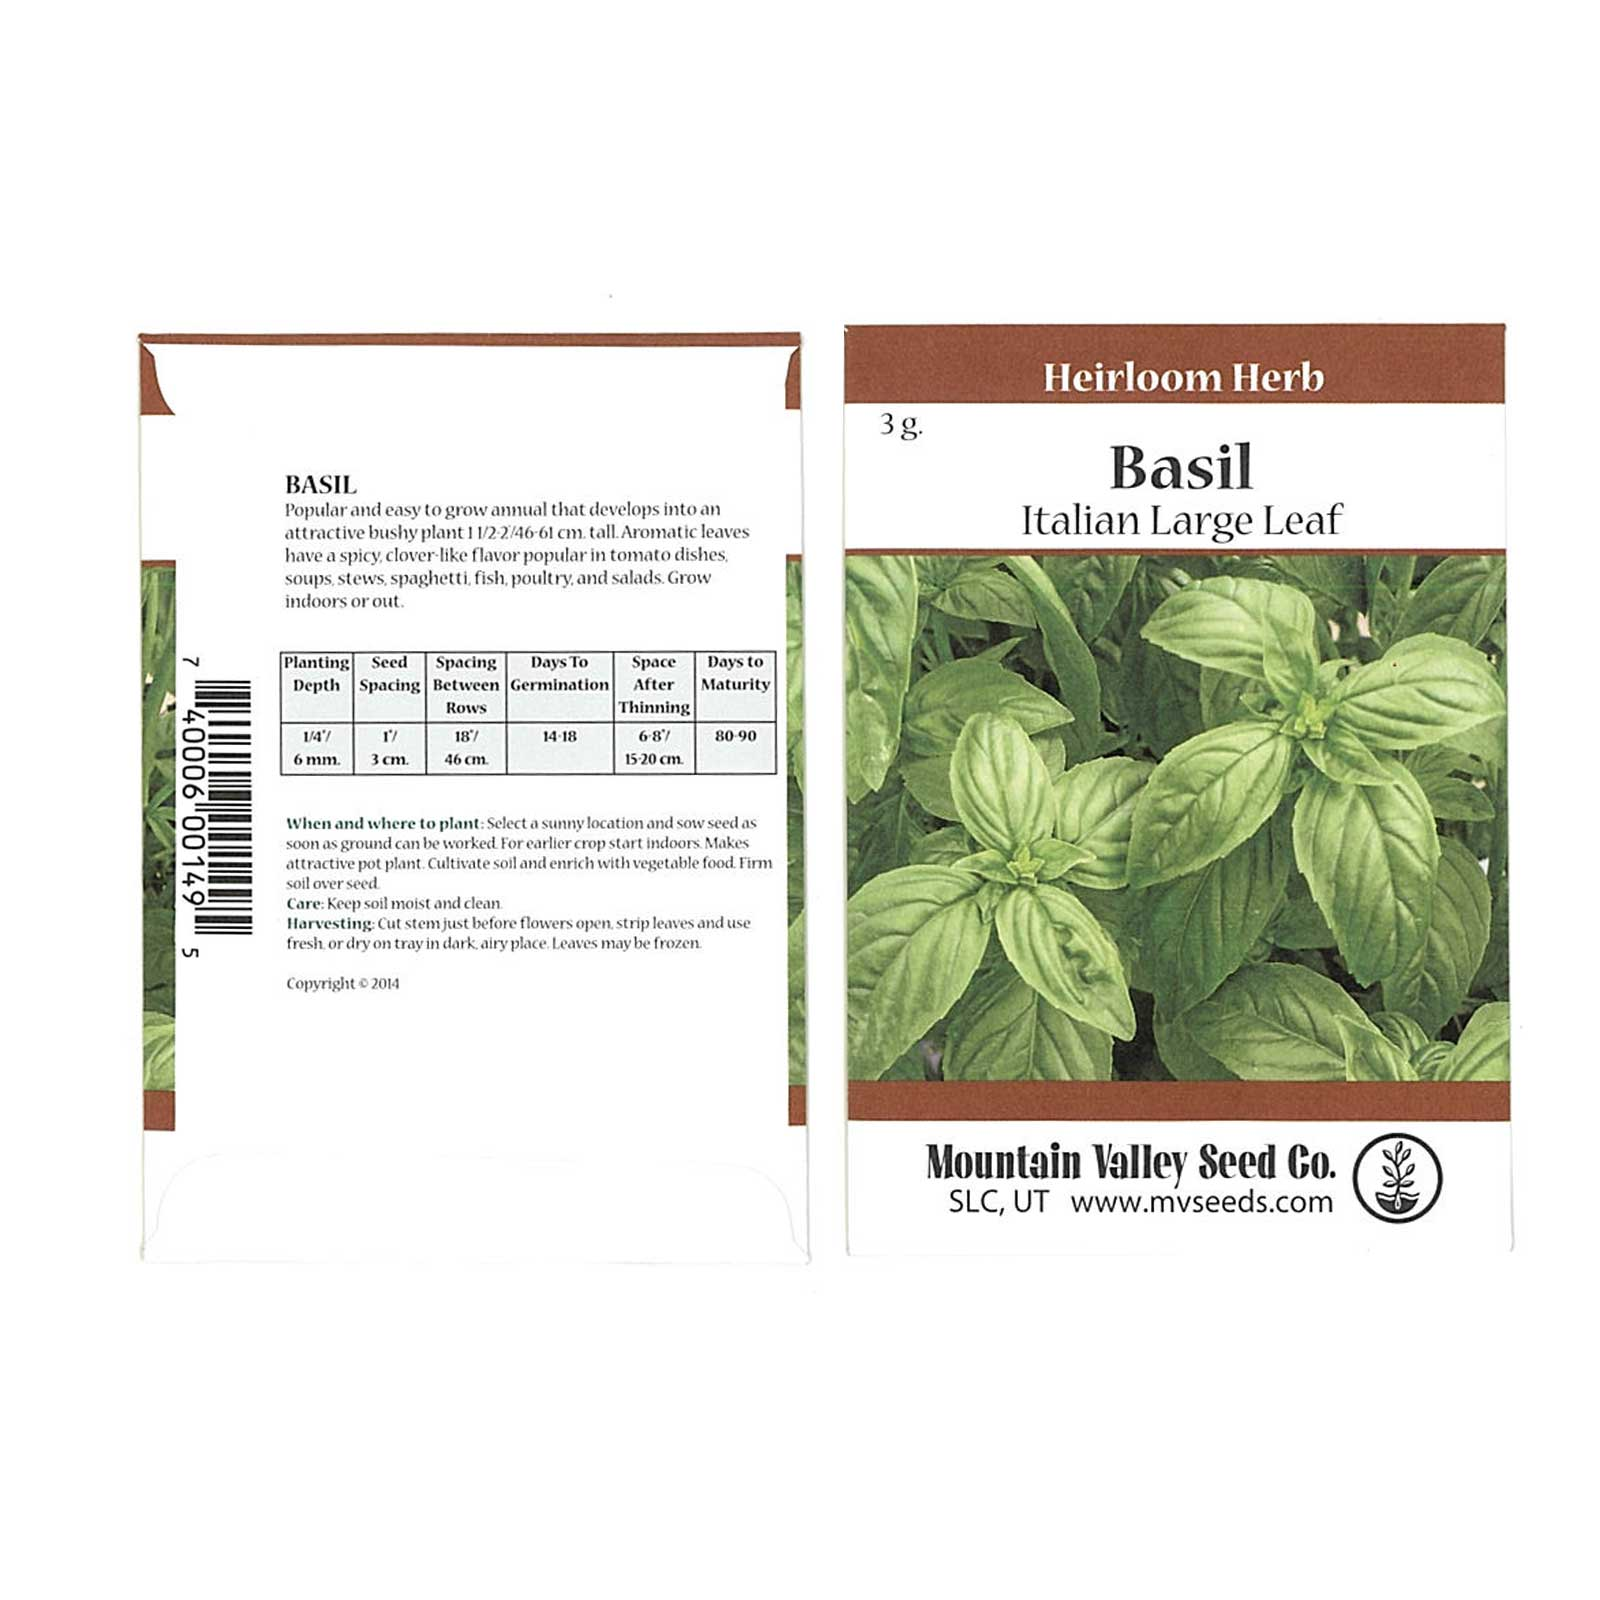 Basil Herb Garden Seeds - Italian Large Leaf - 3 Gram Packet: Approx 2000 Seeds - Non-GMO, Heirloom - Culinary Herb Gardening